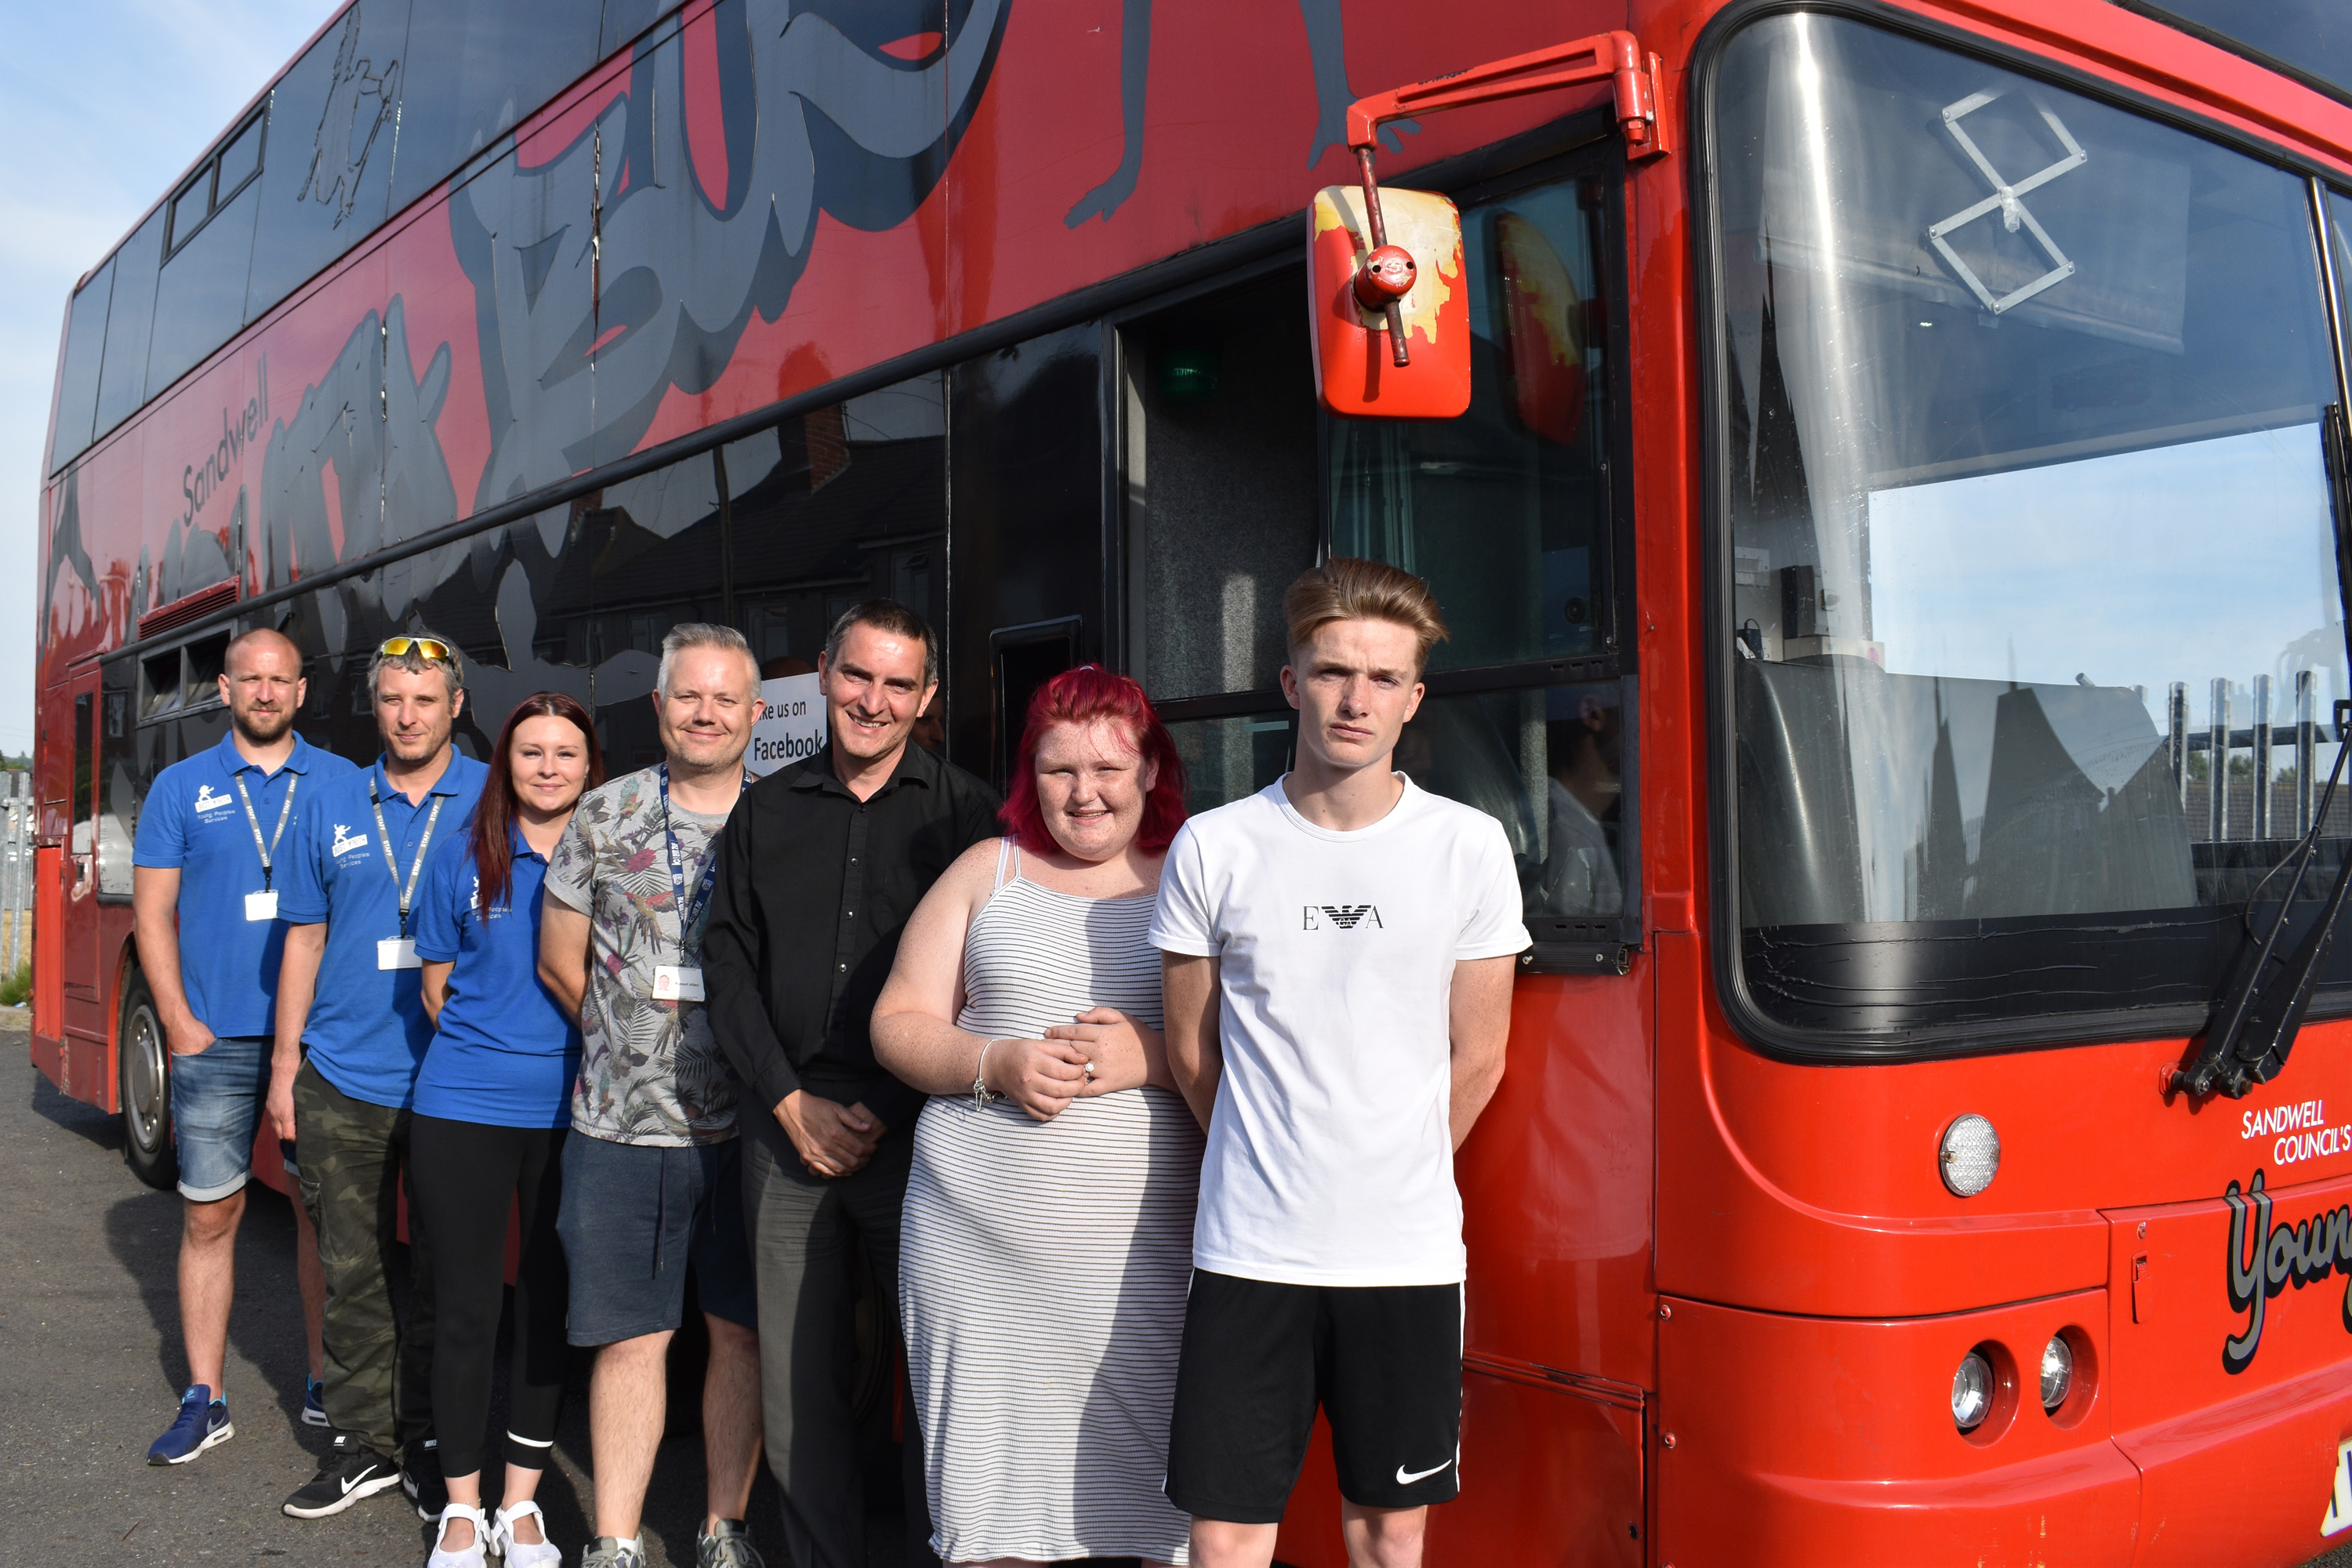 Youth workers Andy Turvey, Stuart Jones, Jayne Norton and Russell Allen with Cllr Simon Hackett and young people Briony and Brandon